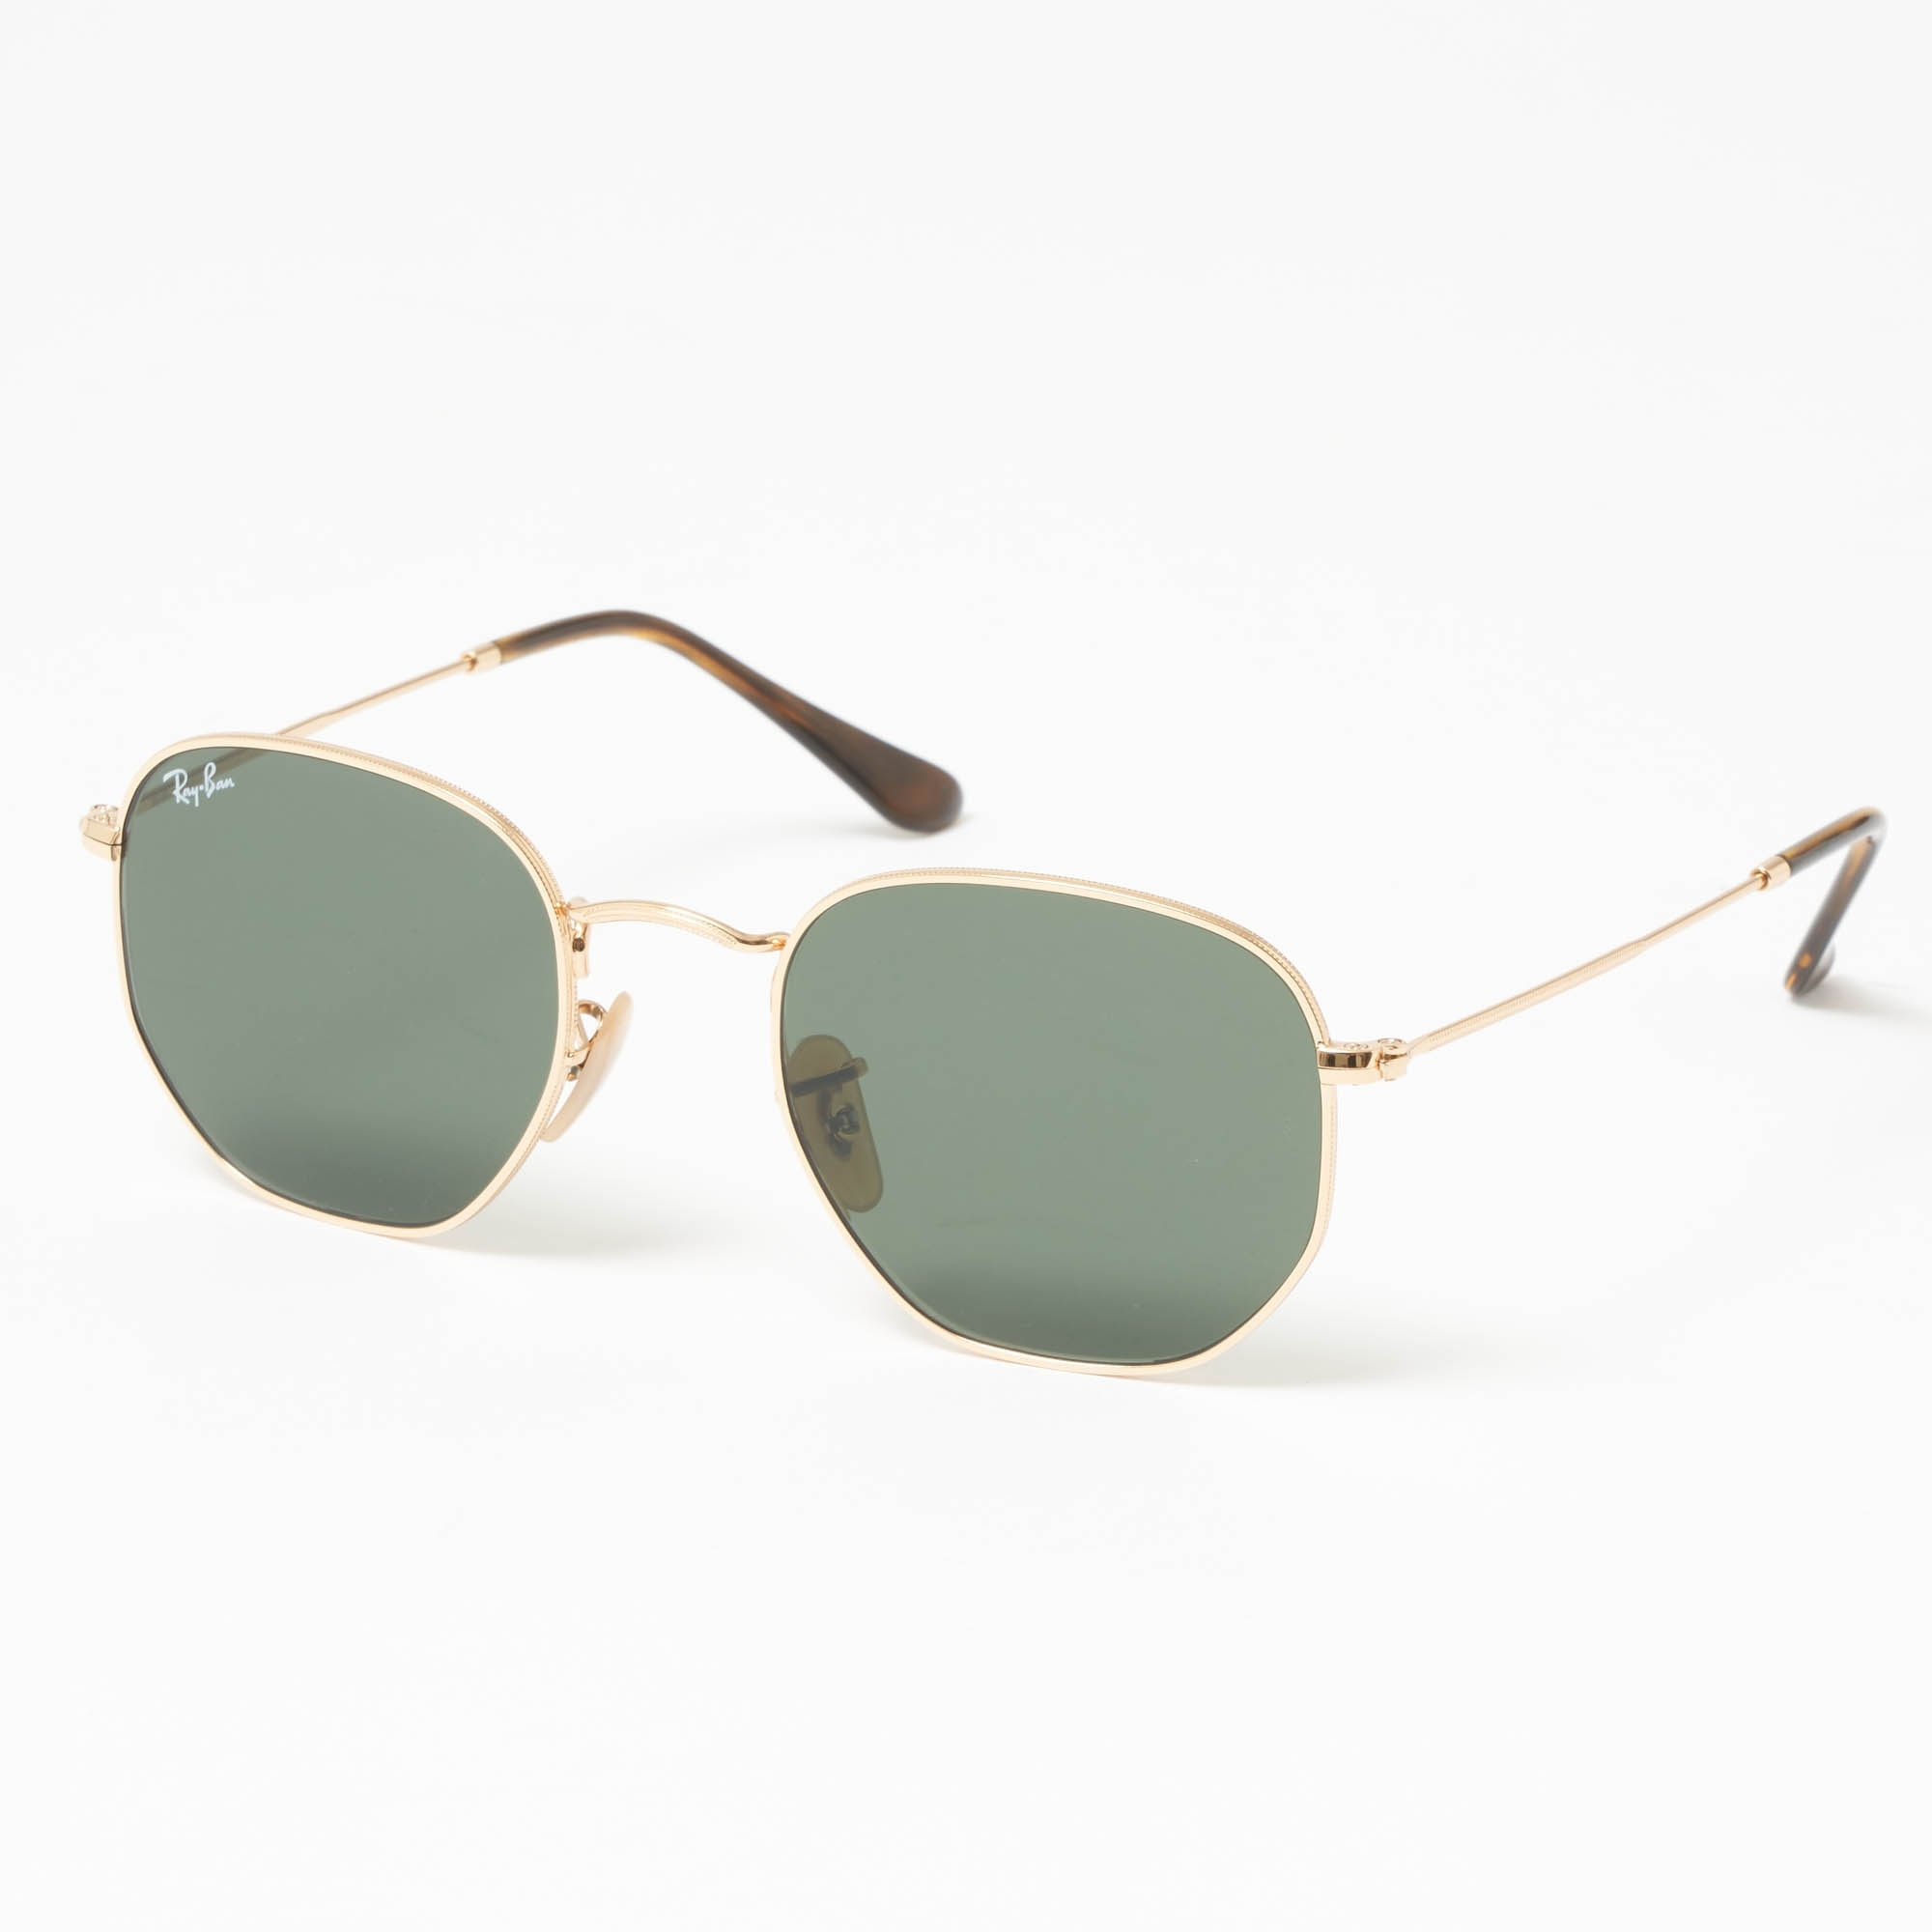 abd73293907 Gold Hexagonal Flat Lens Sunglasses - Green Classic G-15 Lenses